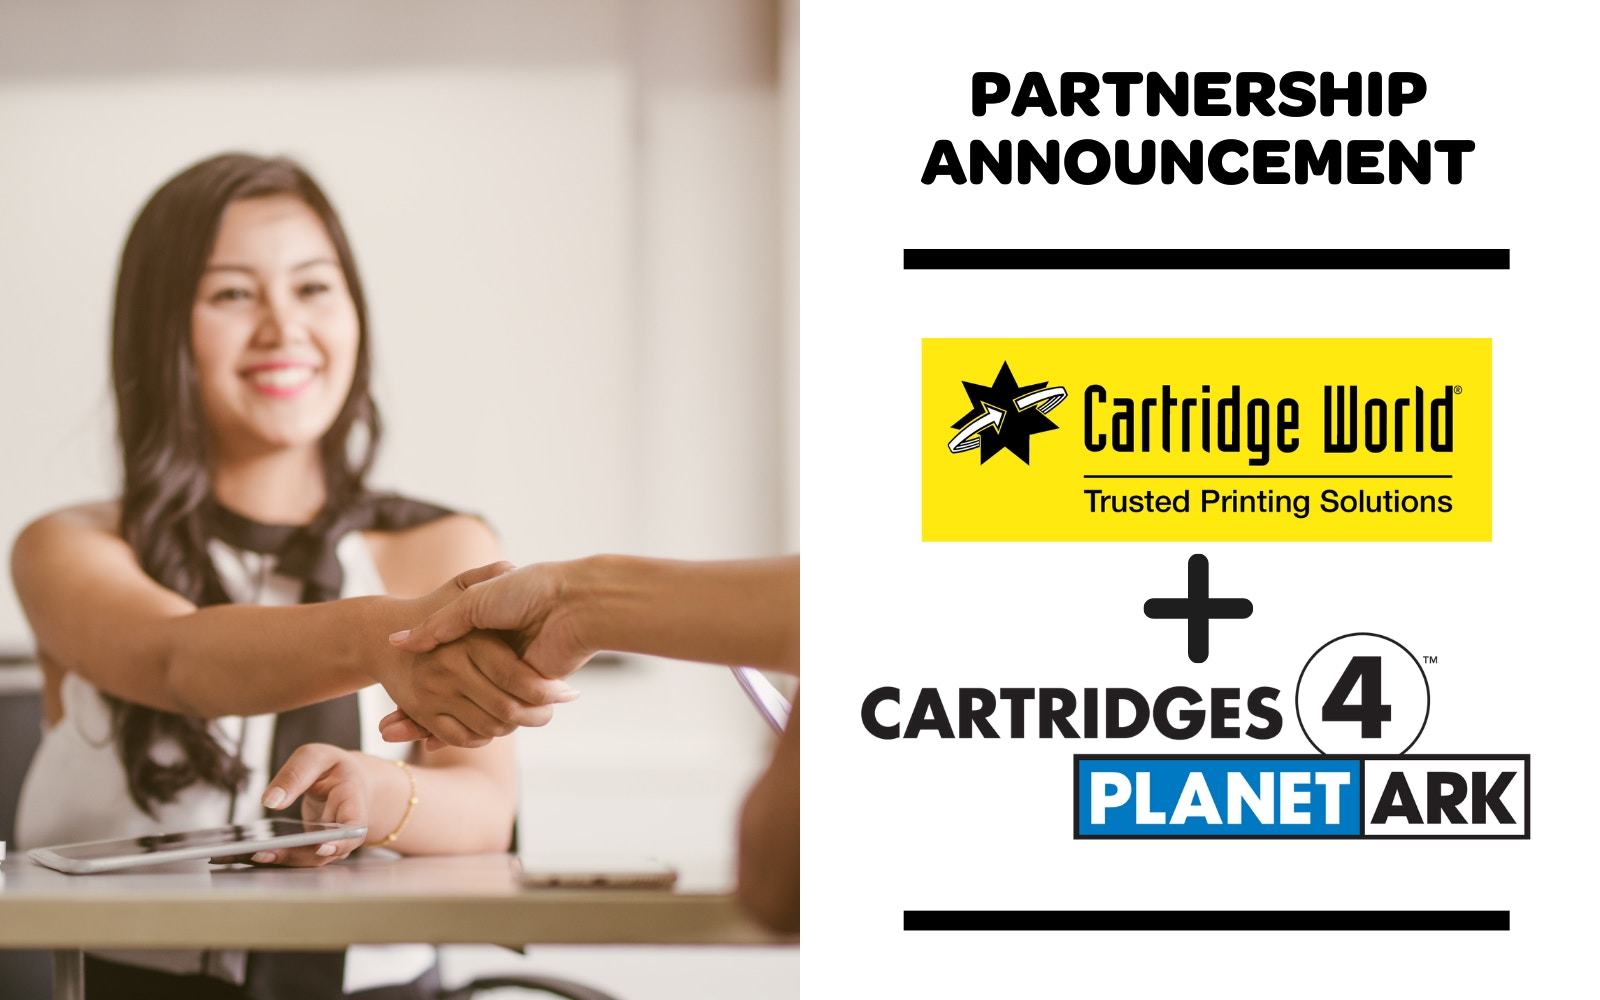 Cartridge World announces new partnership with Cartridges 4 Planet Ark